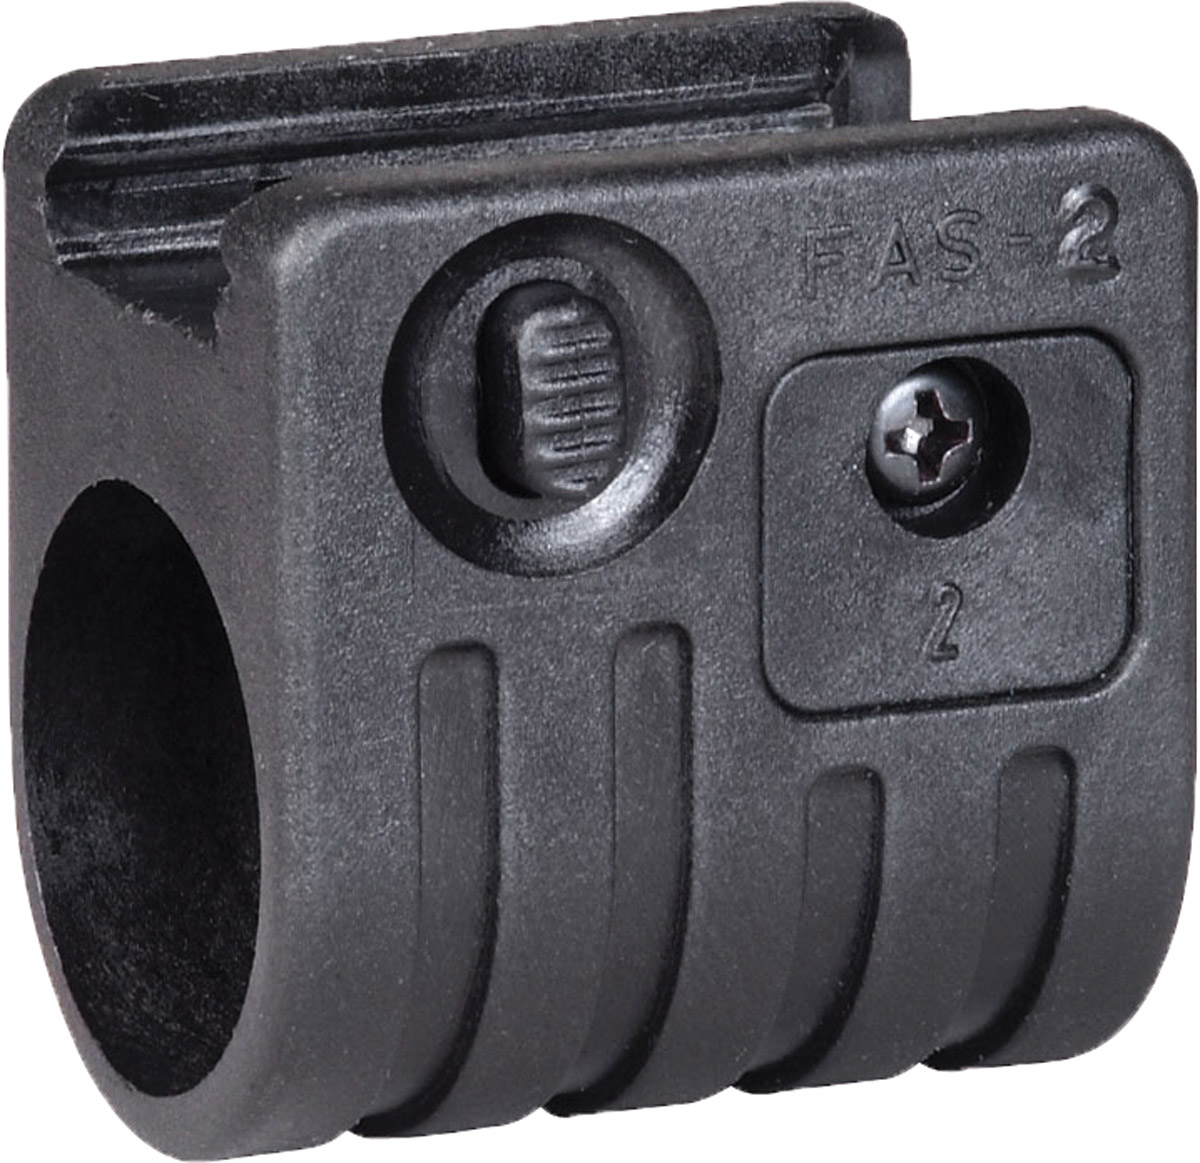 Flashlight Mount Mini Mag Light AA Quick Detach WEAP-CA/FAS3ML